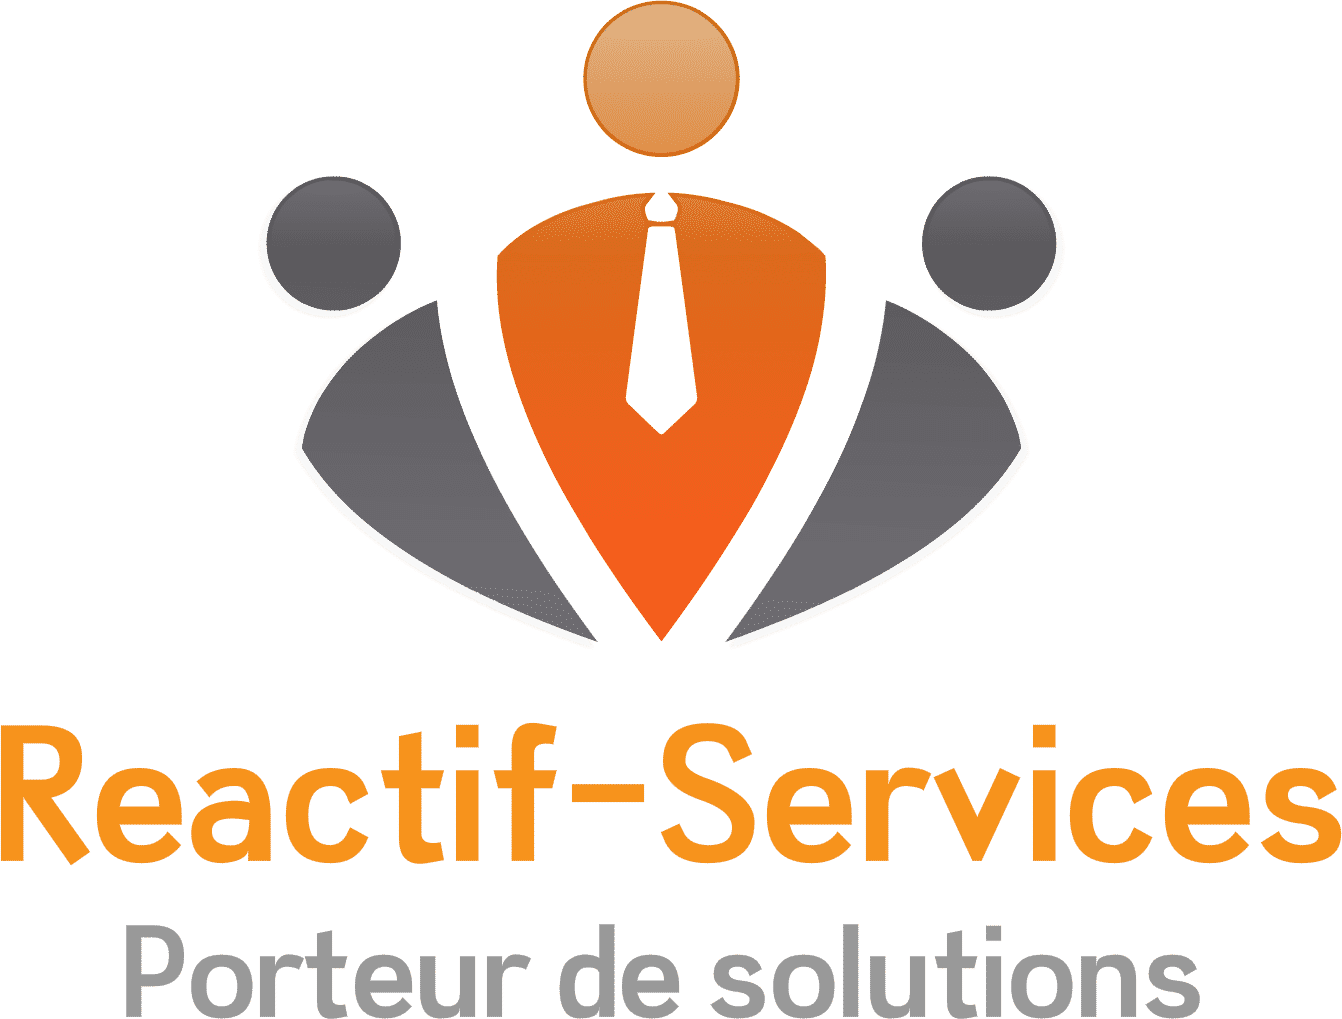 Reactif Services